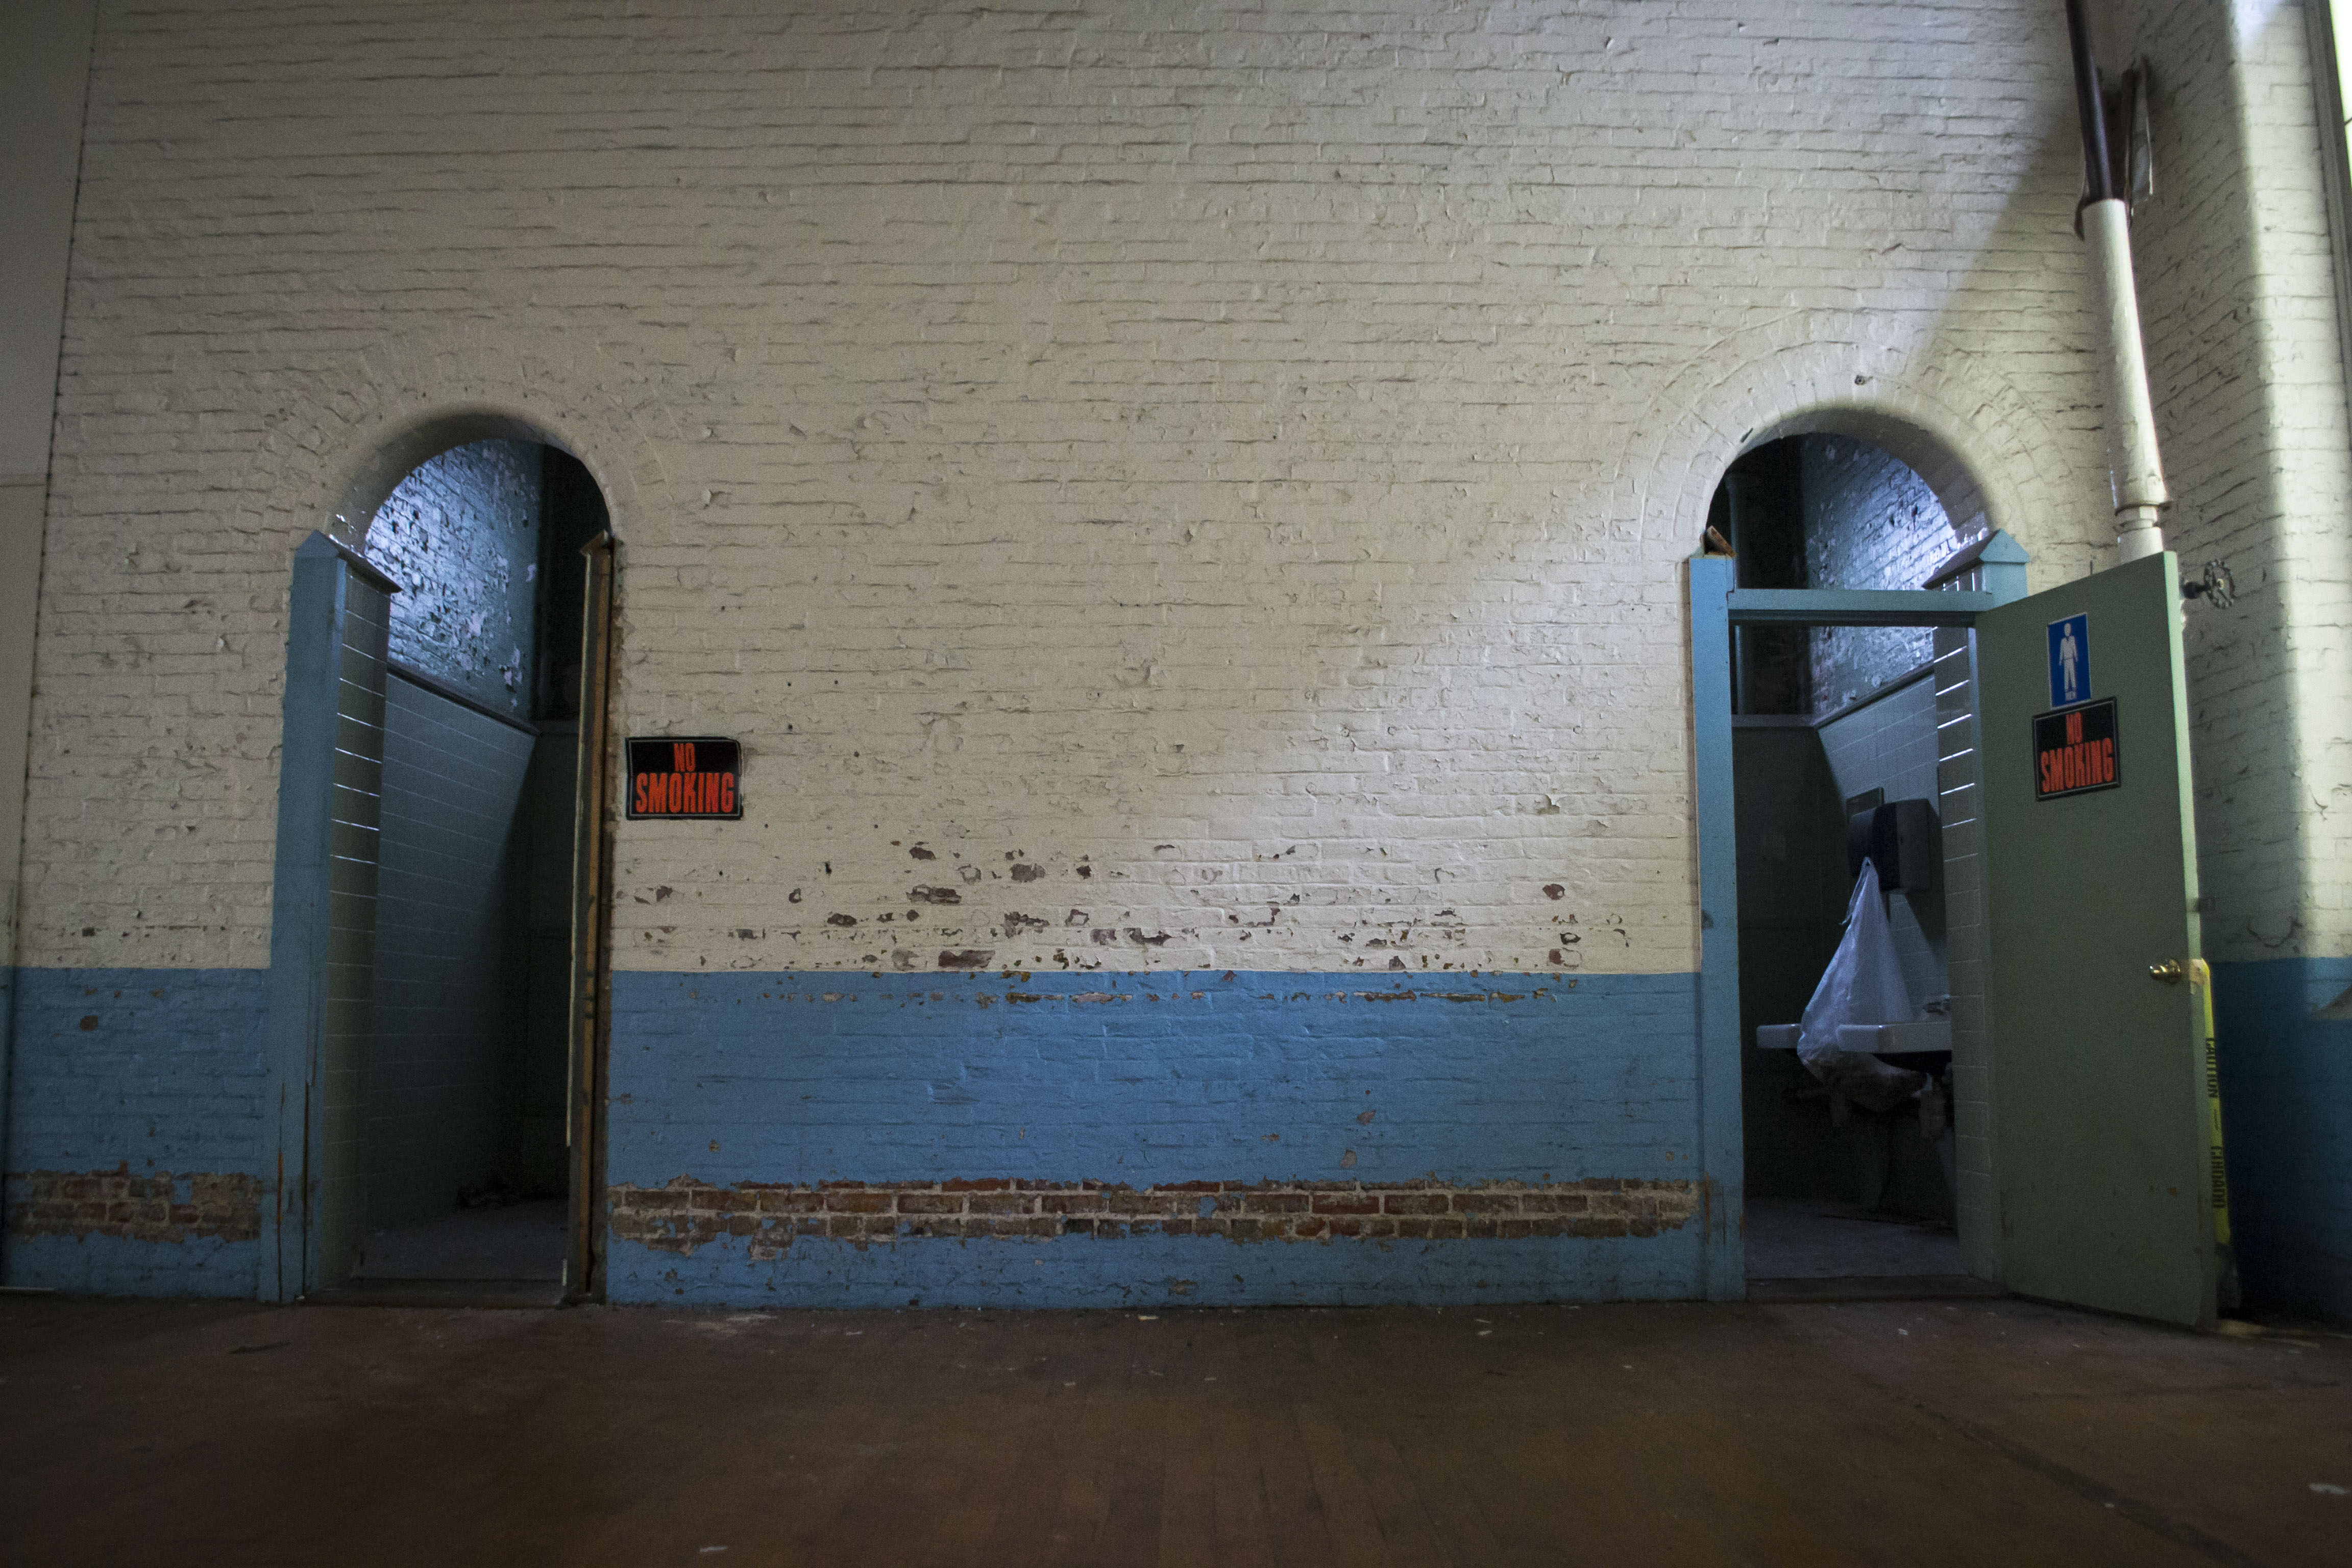 In its hey day, the Pepperell Mill employed 1,800 people, many of them from foreign countries. The first thing they were taught, Guillerault said, was how to find the bathrooms when they were working, easily identified by these signature arched doorways. ALAN BENNETT/Journal Tribune